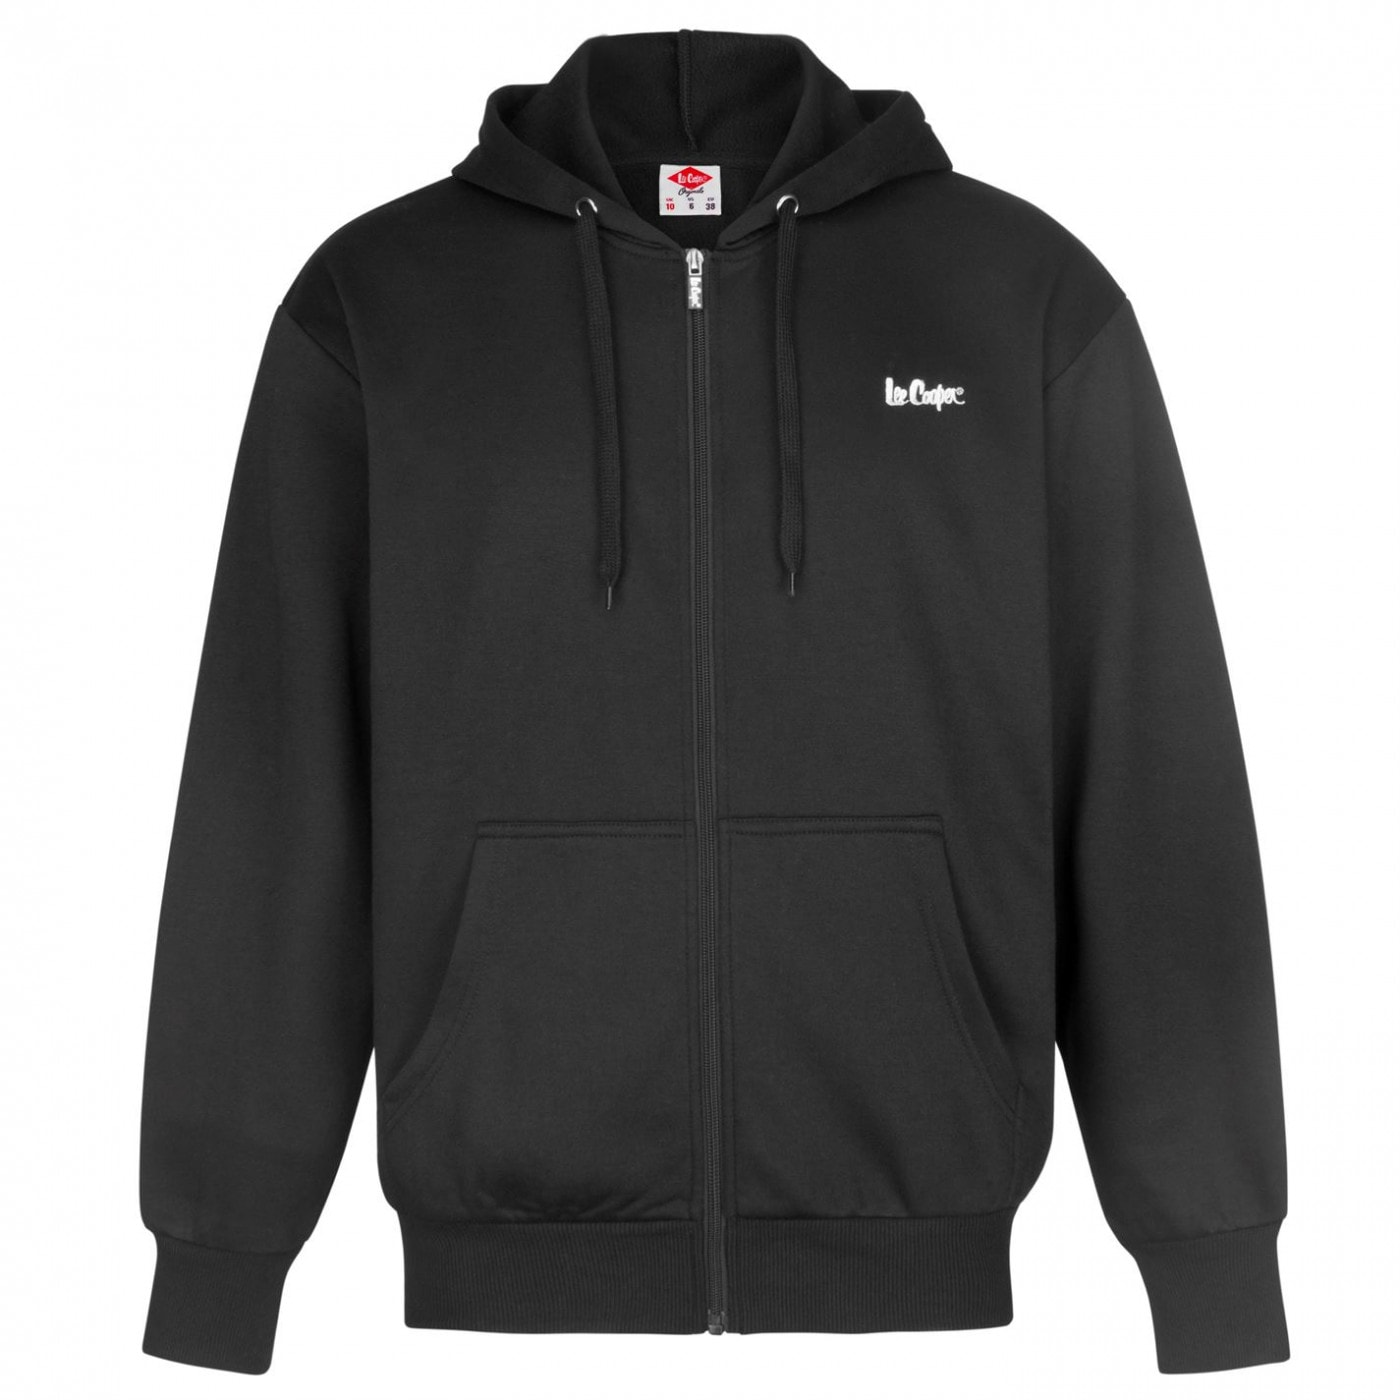 Women's sweatshirt Lee Cooper Zip Thru